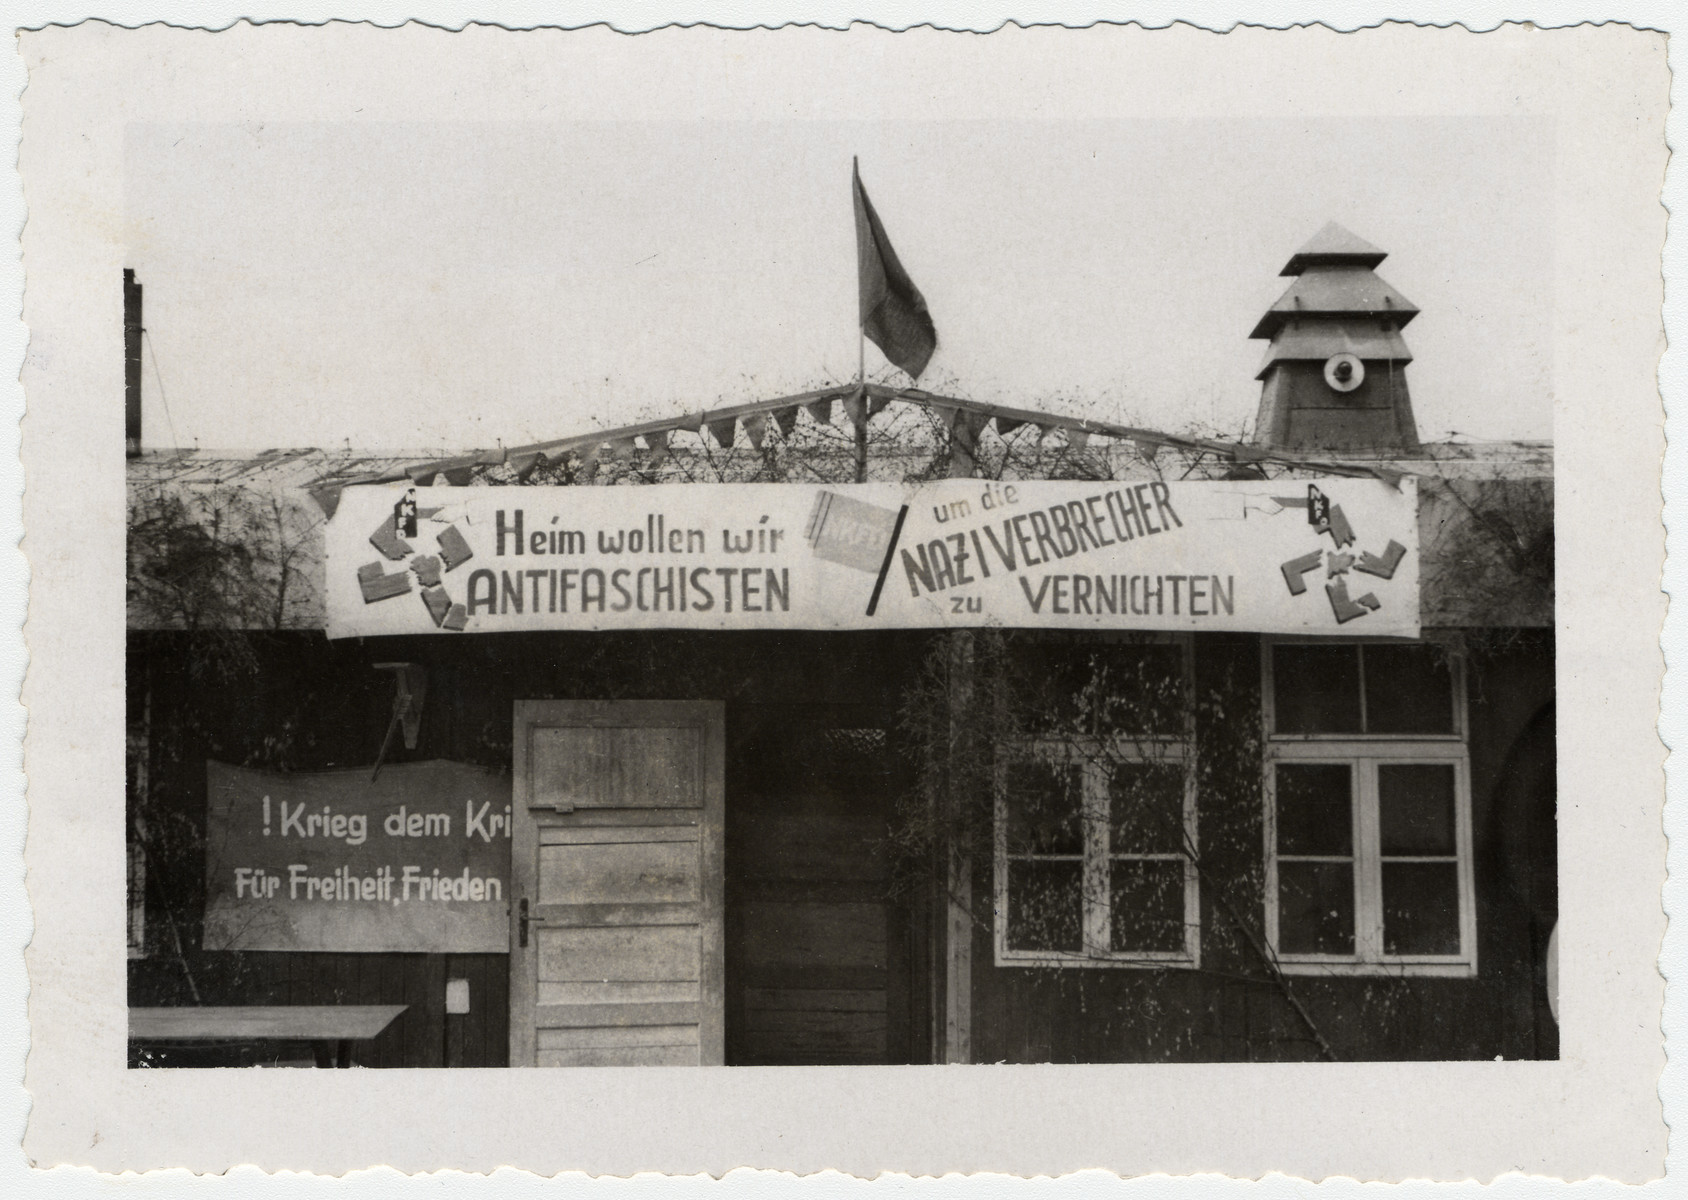 "Exterior view of a barrack in the newly liberated Buchenwald bedecked with an anti-Nazi sign.  It says, ""Heim wollen wir ANTIFASCHISTEN um die NAZI VERBRECHER zu VERNICHTEN,"" [At home we want antif-facists in order to kill the Nazi criminals]."